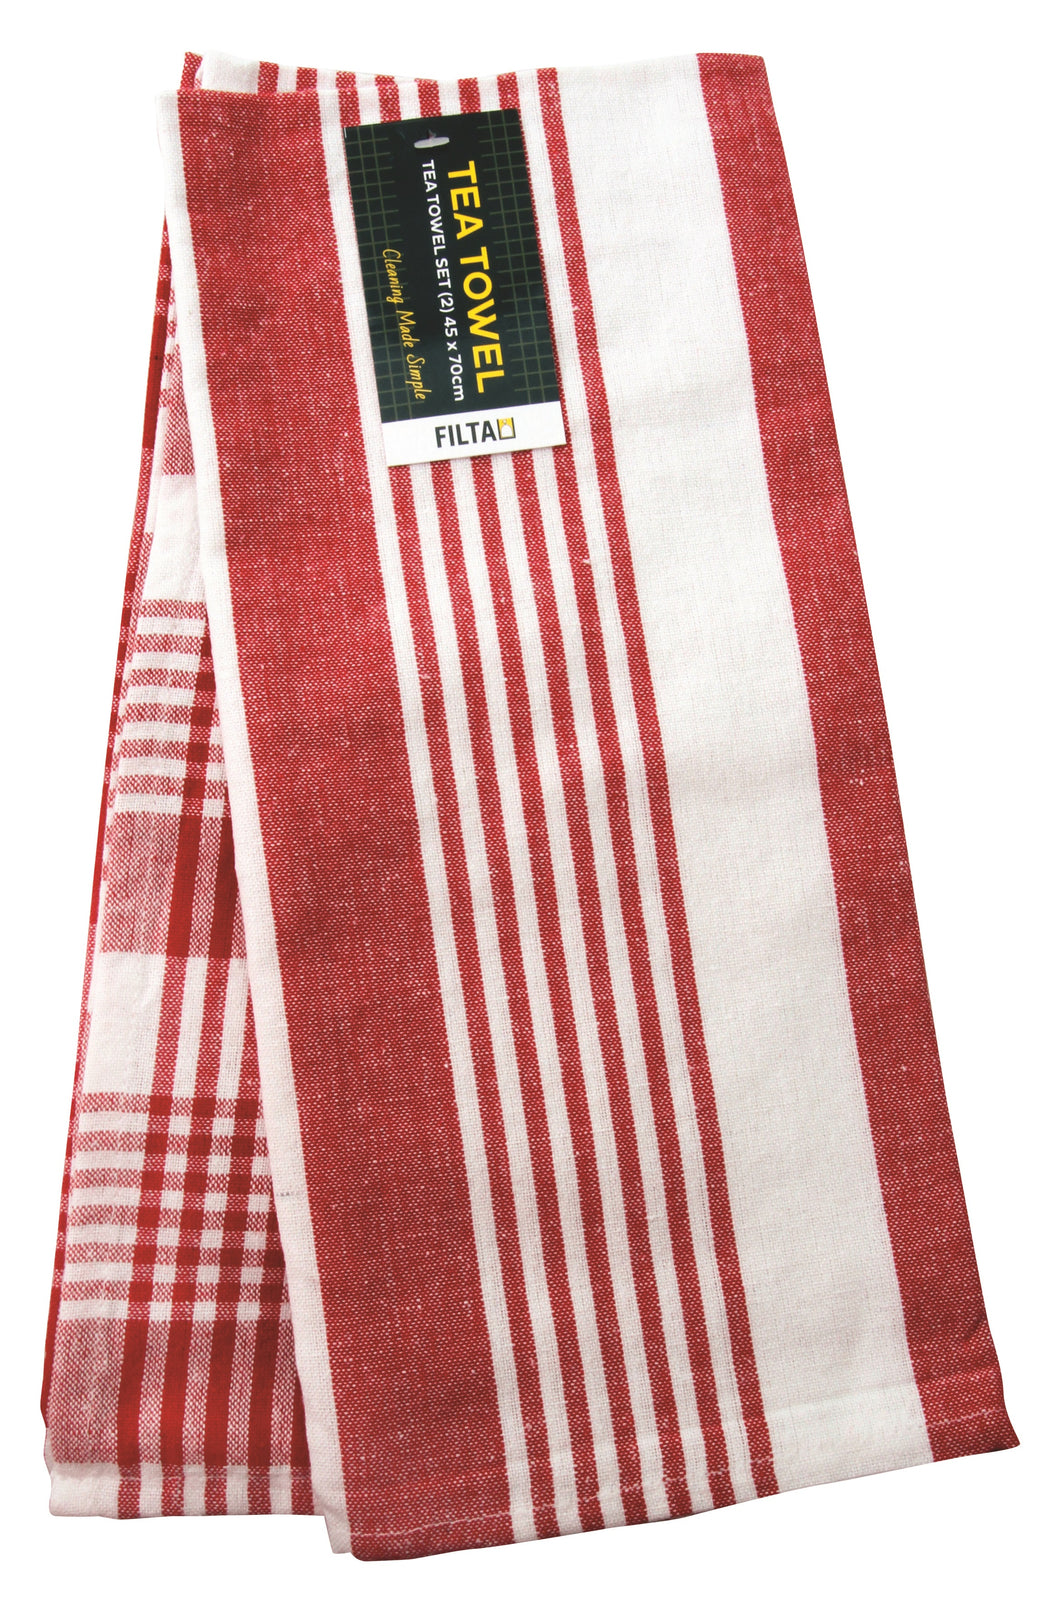 FILTA COTTON TEA TOWEL ROYAL RED 2 PACK (45CM X 70CM)